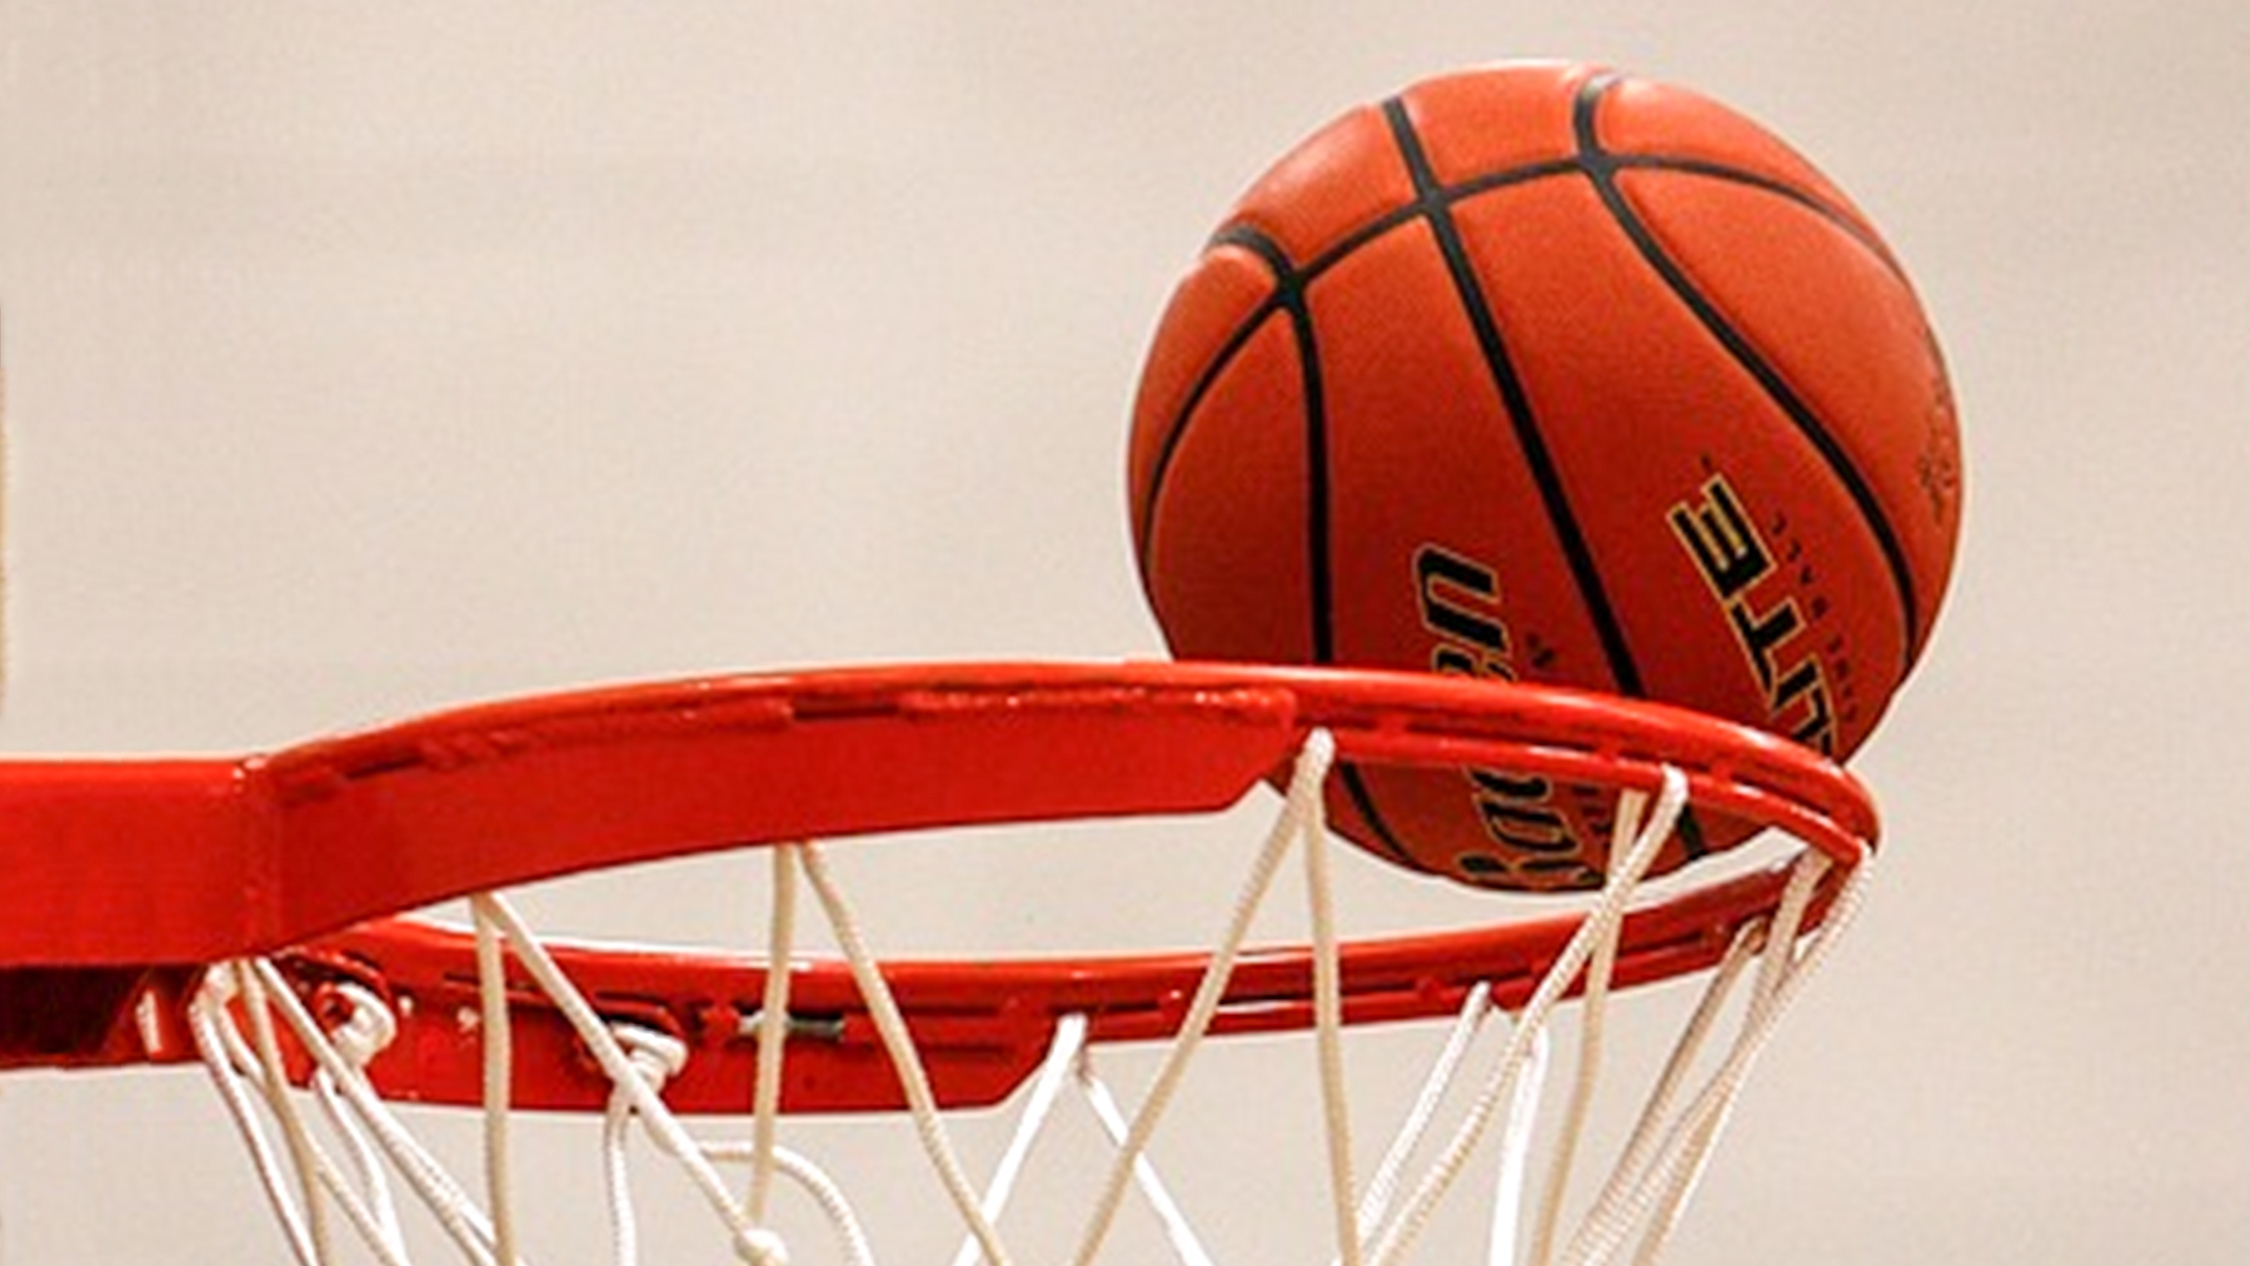 Generic basketball image for High School Musical